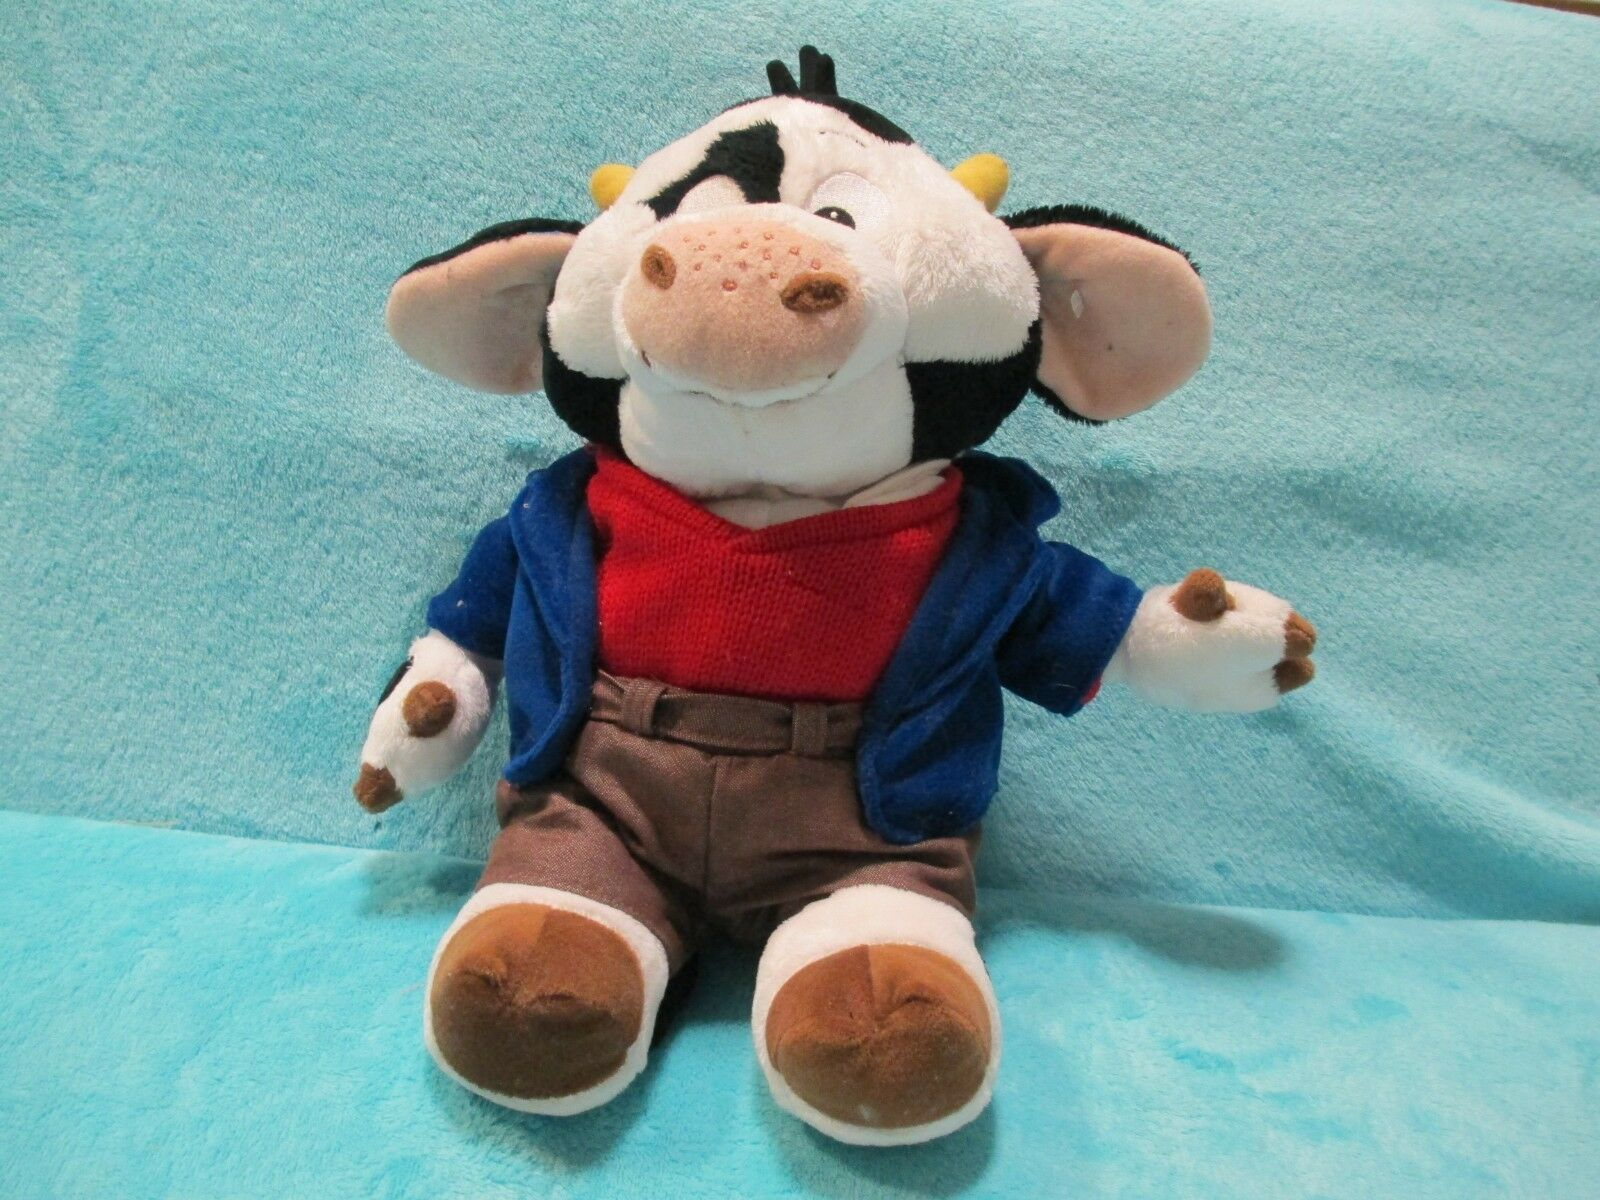 TALKING JAKERS The Adventures Of Piggley Winks - Ferny Tgold Soft Plush Toy 14